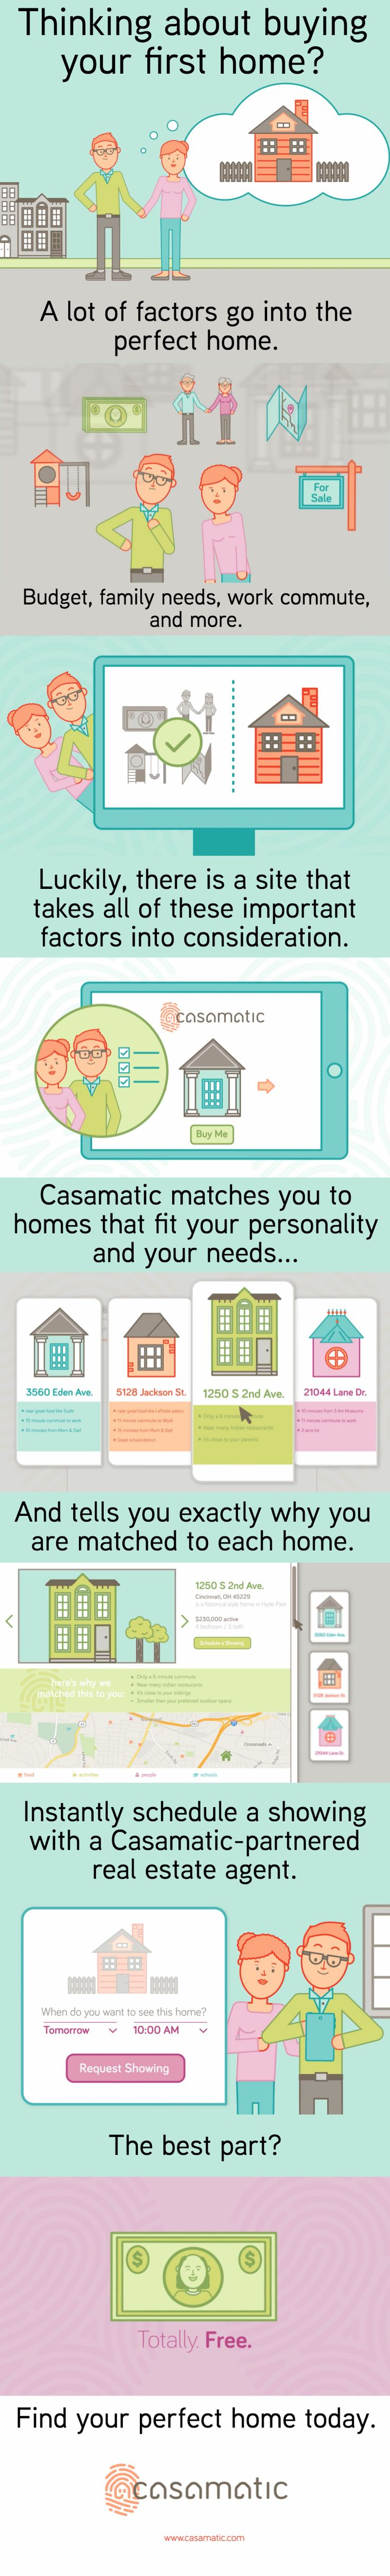 Casamatic instantly matches you to the perfect home.